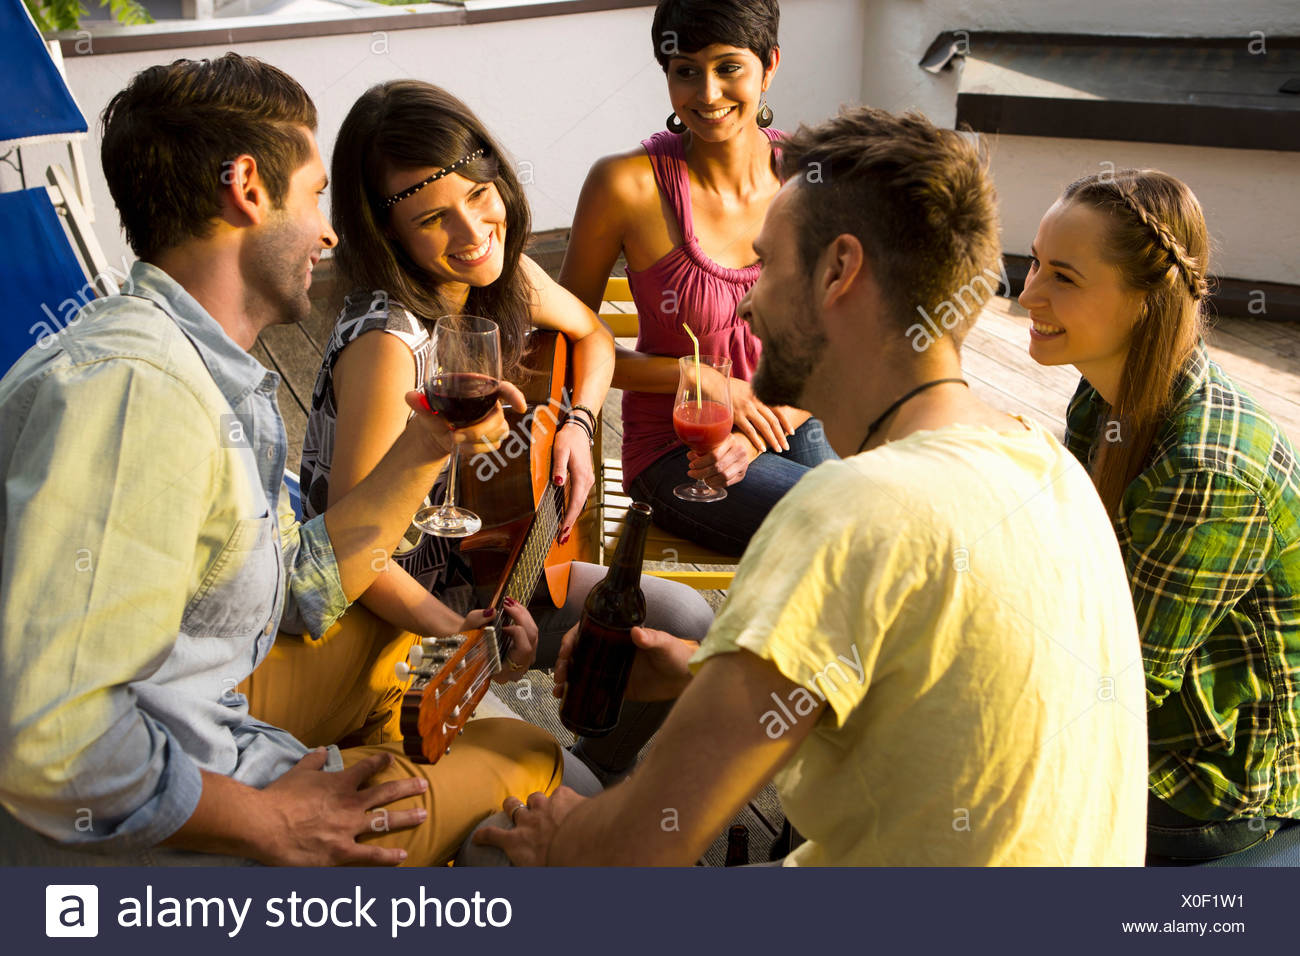 Four friends with drinks, woman playing guitar - Stock Image